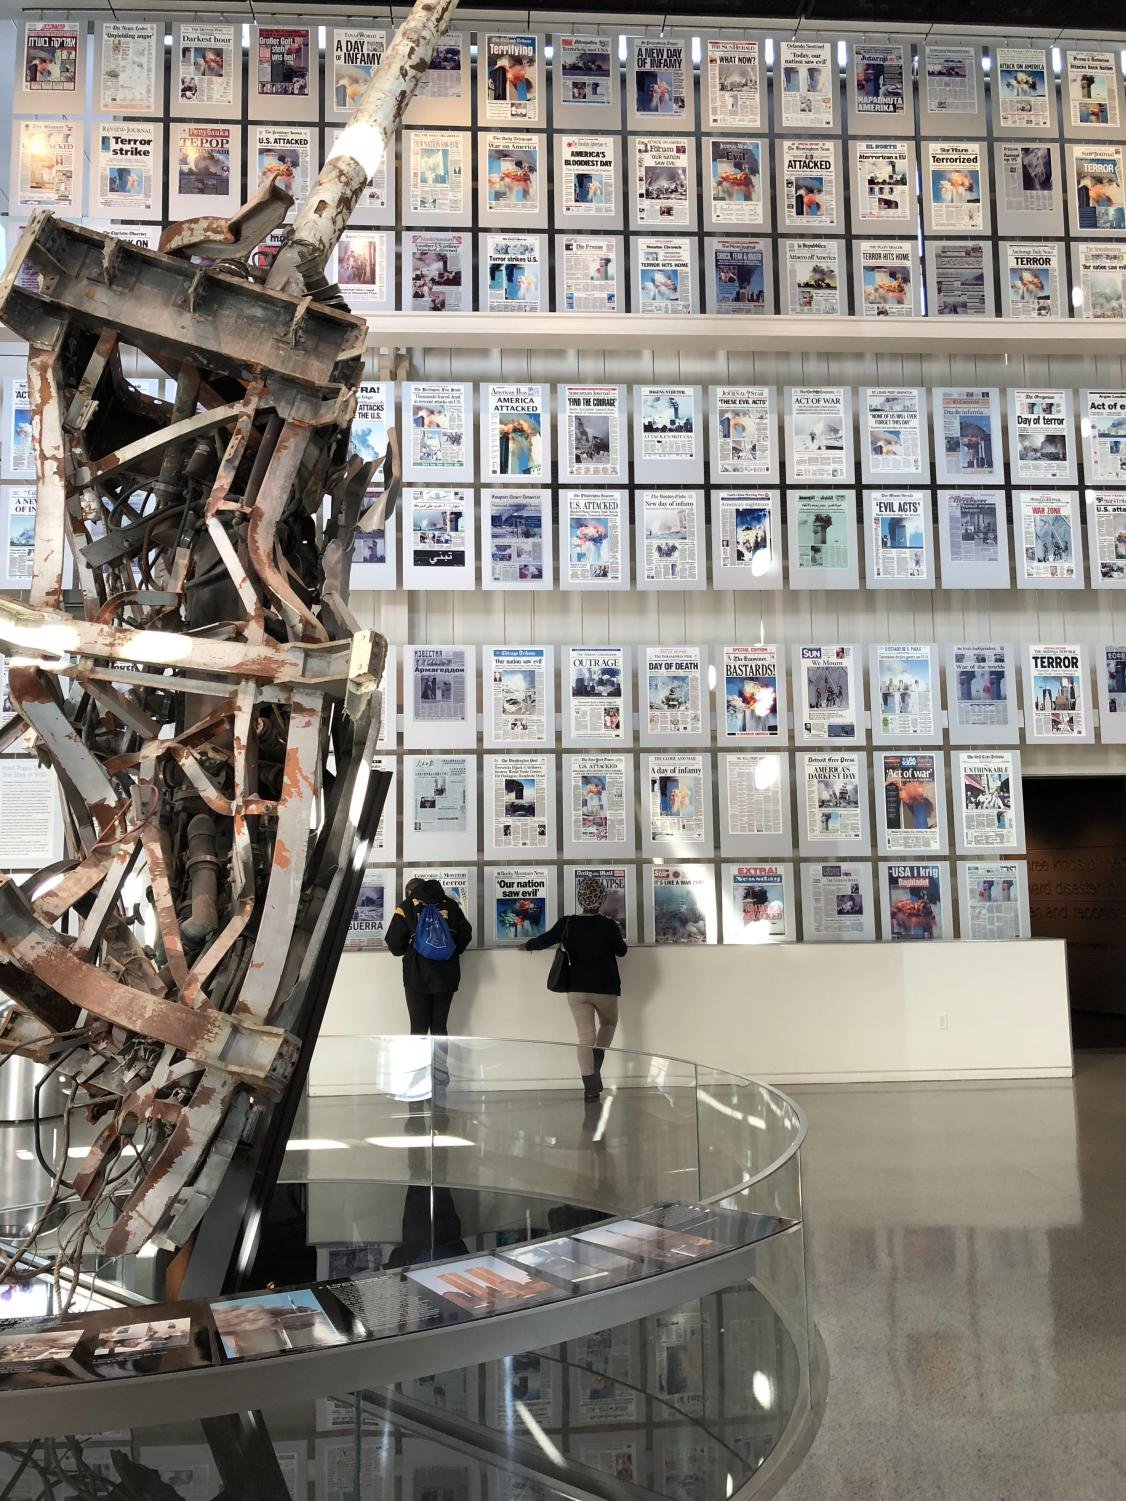 Junior Cory Bucy and senior Crystal Foretia view historic front pages at the 9/11 Gallery.